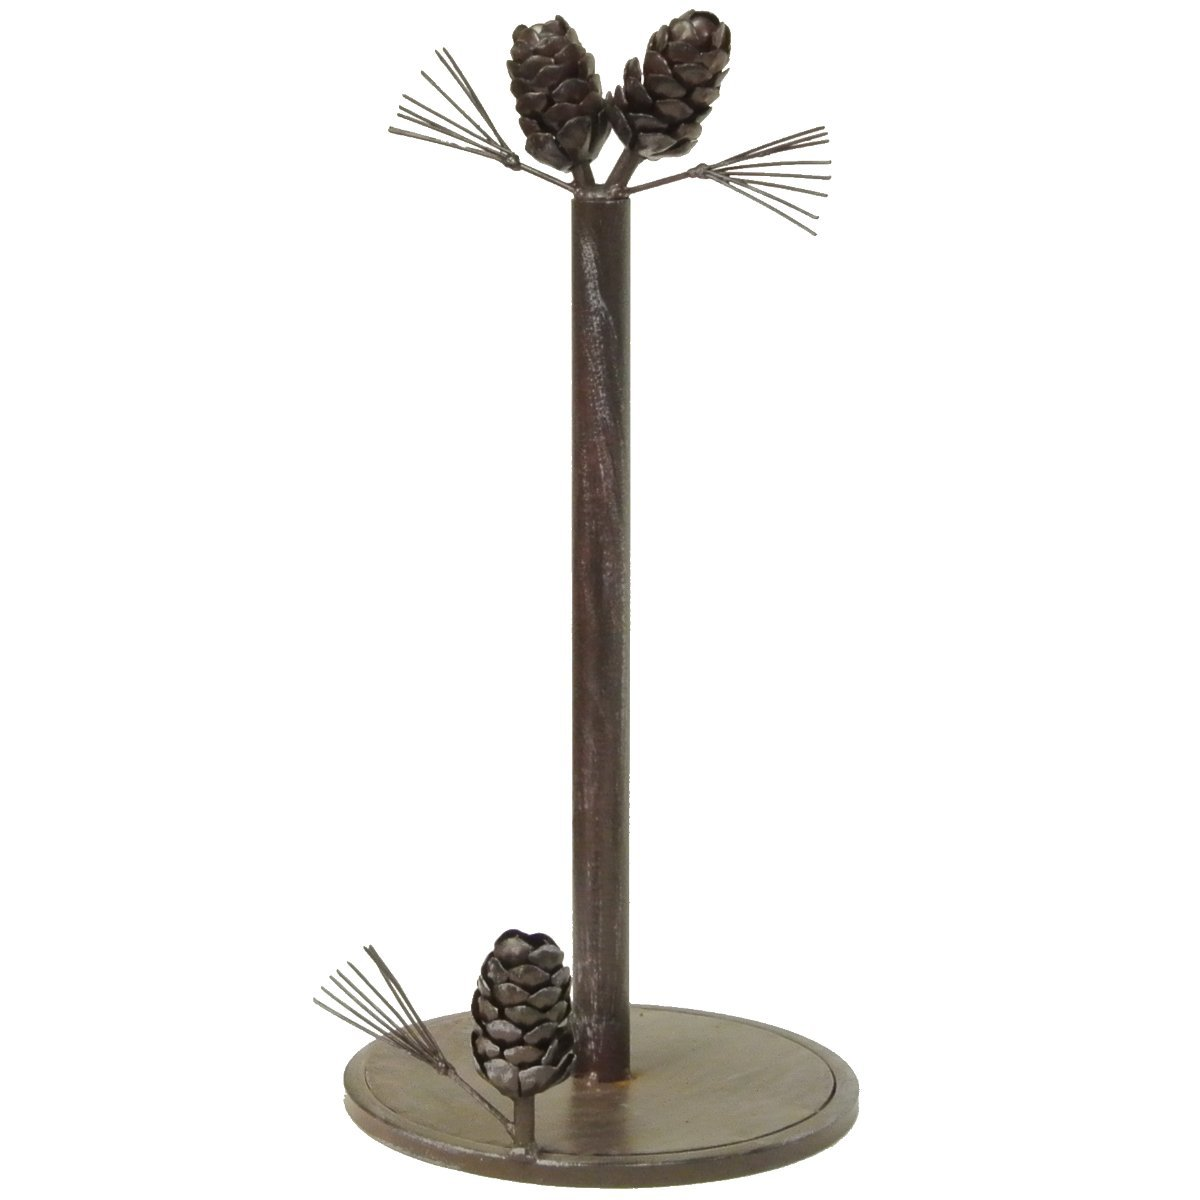 LL Home Pinecone Paper Towel Holder